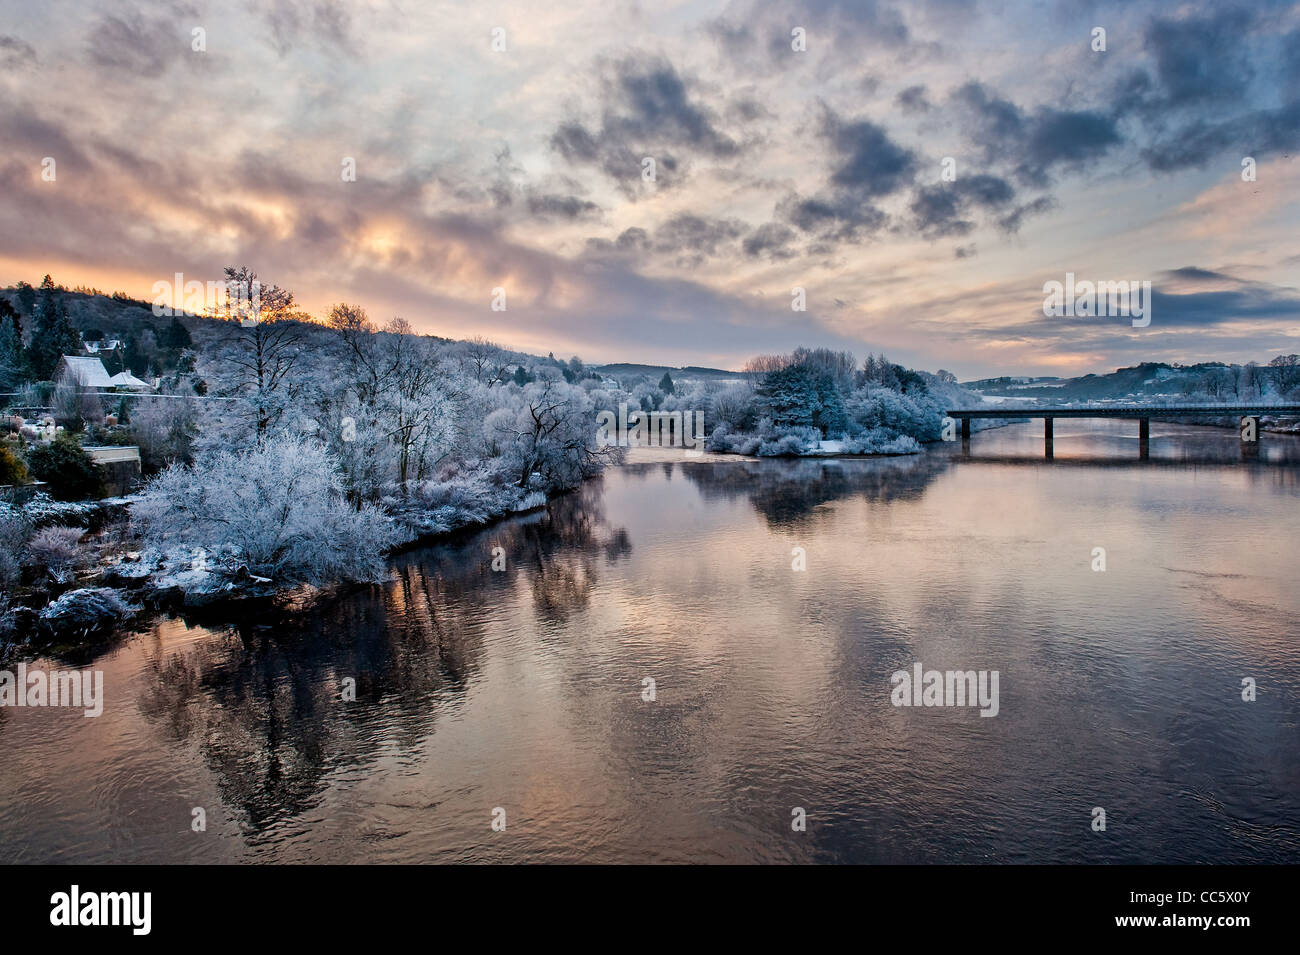 An early morning sunrise on a cold and frosty morning in Perth, Scotland overlooking the river tay in the town centre. - Stock Image